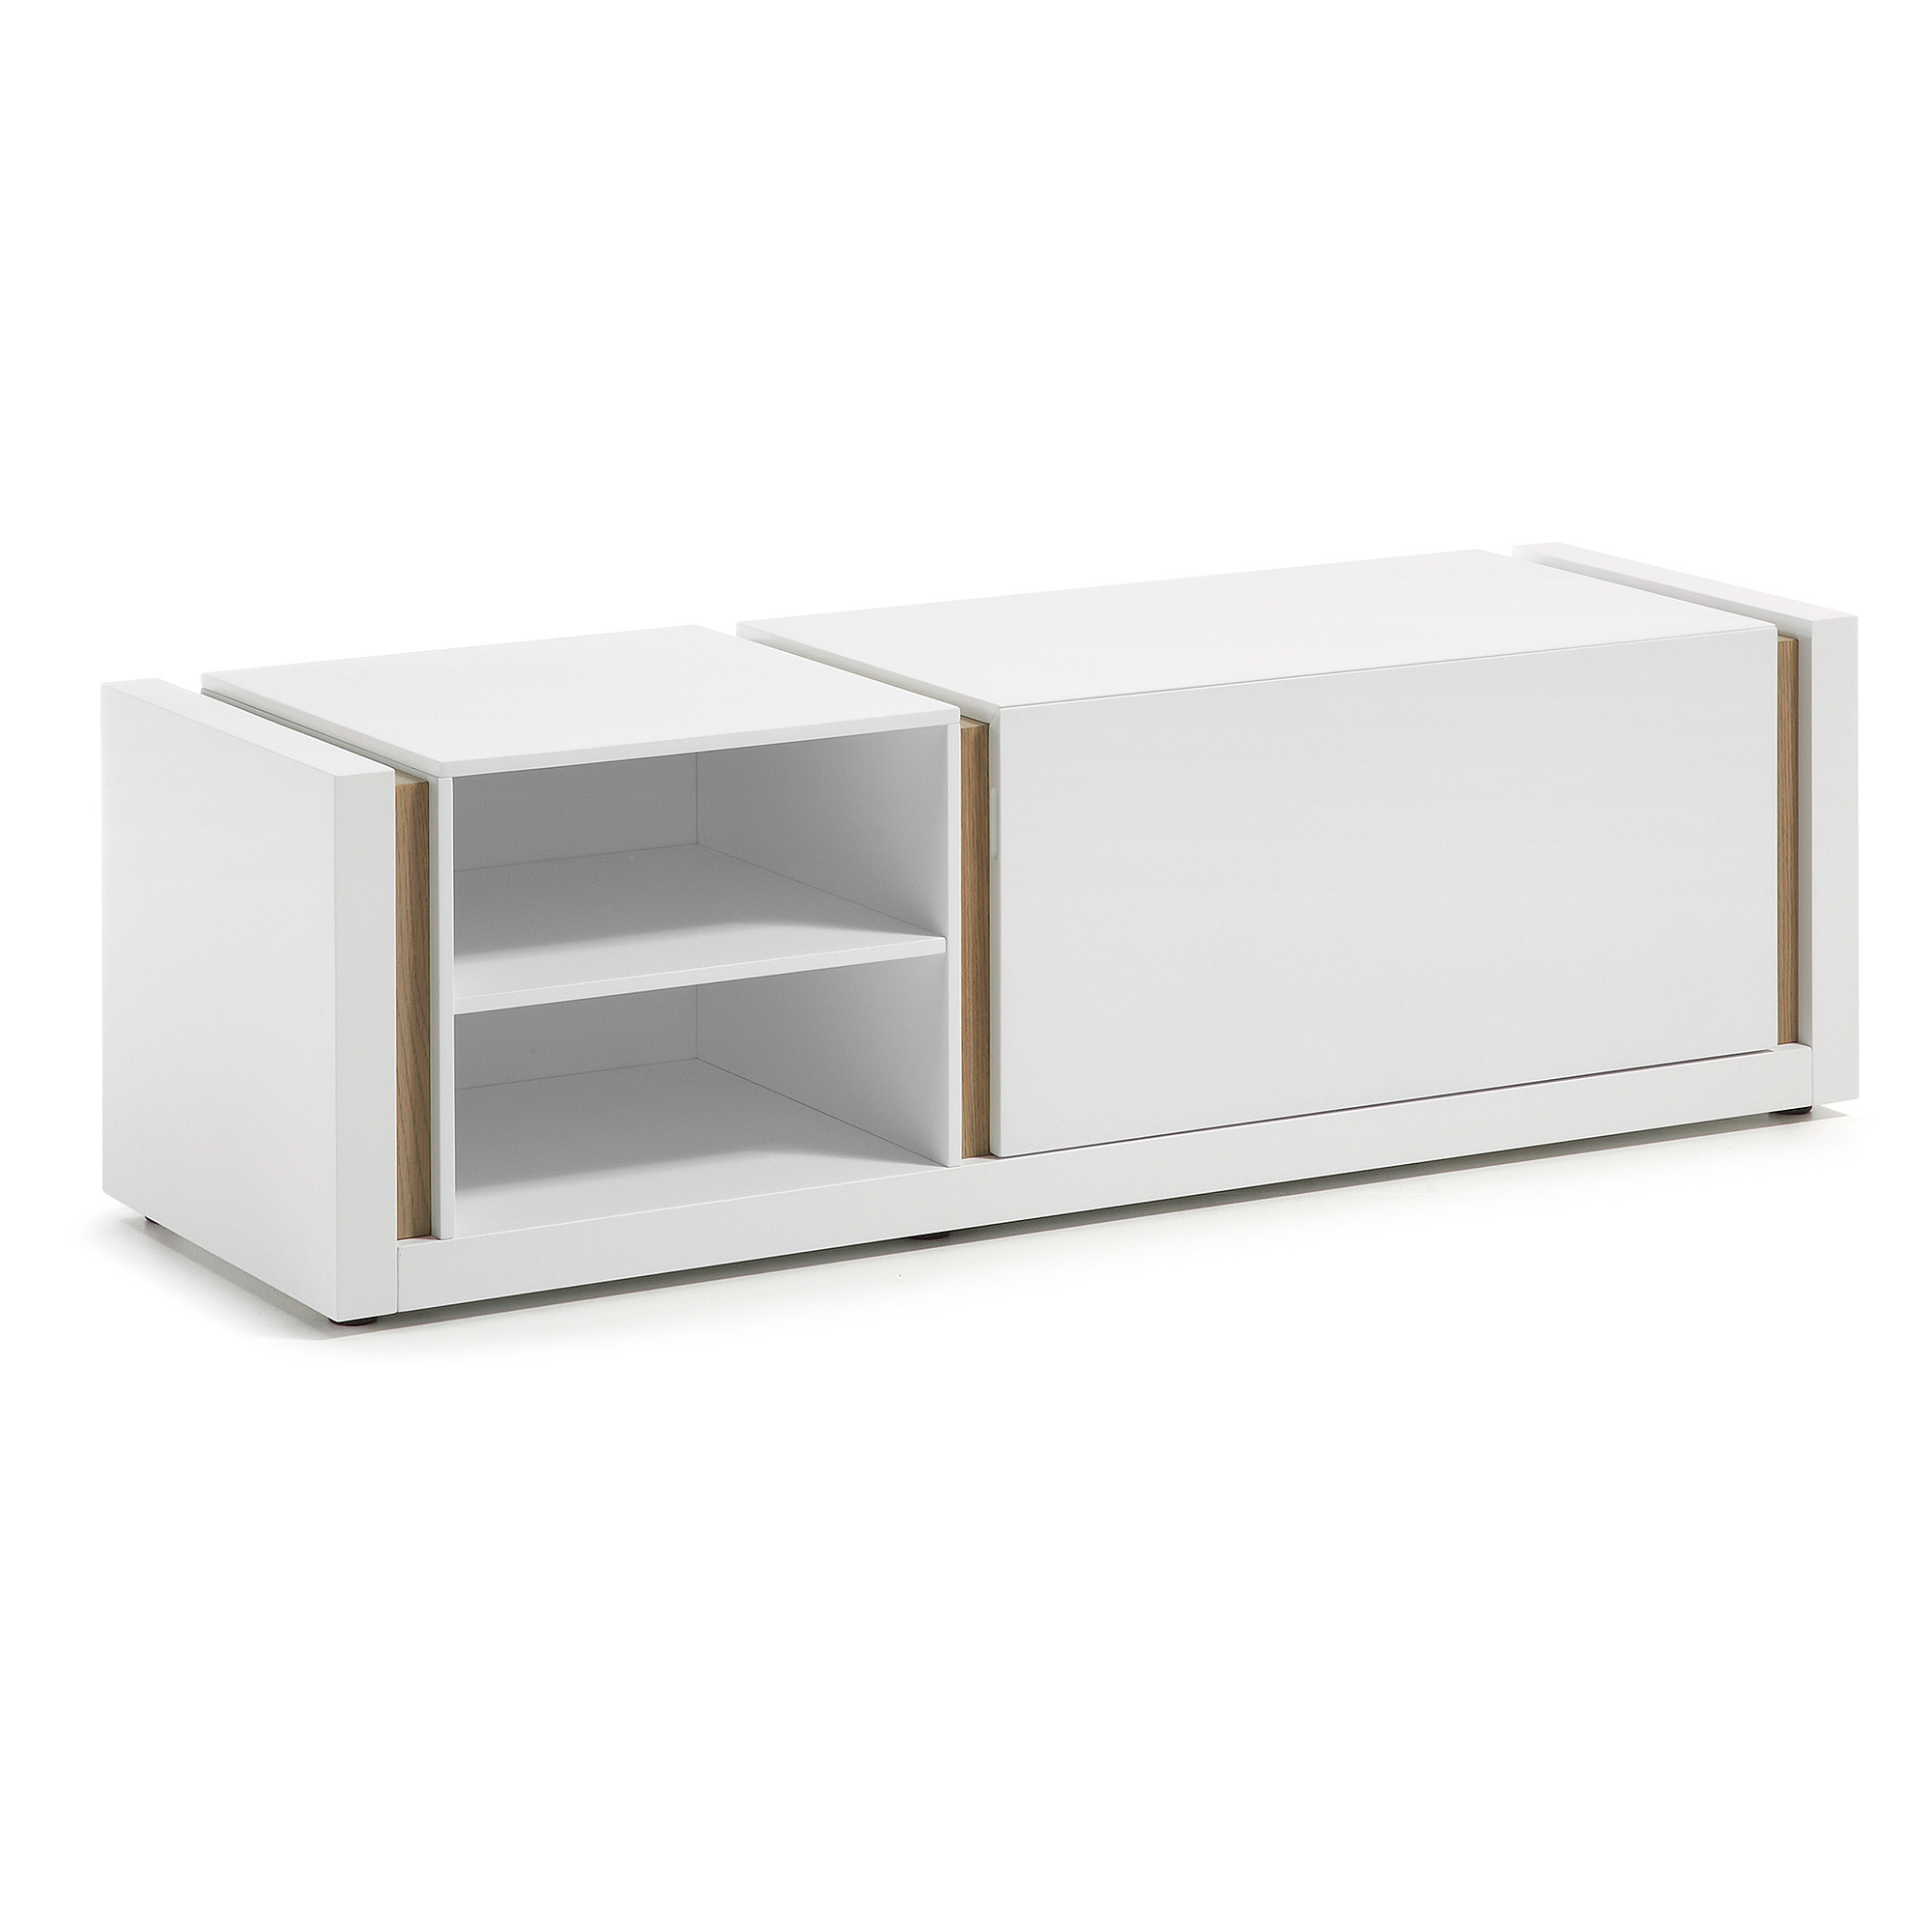 Mueble TV nordic blanco mate roble 140